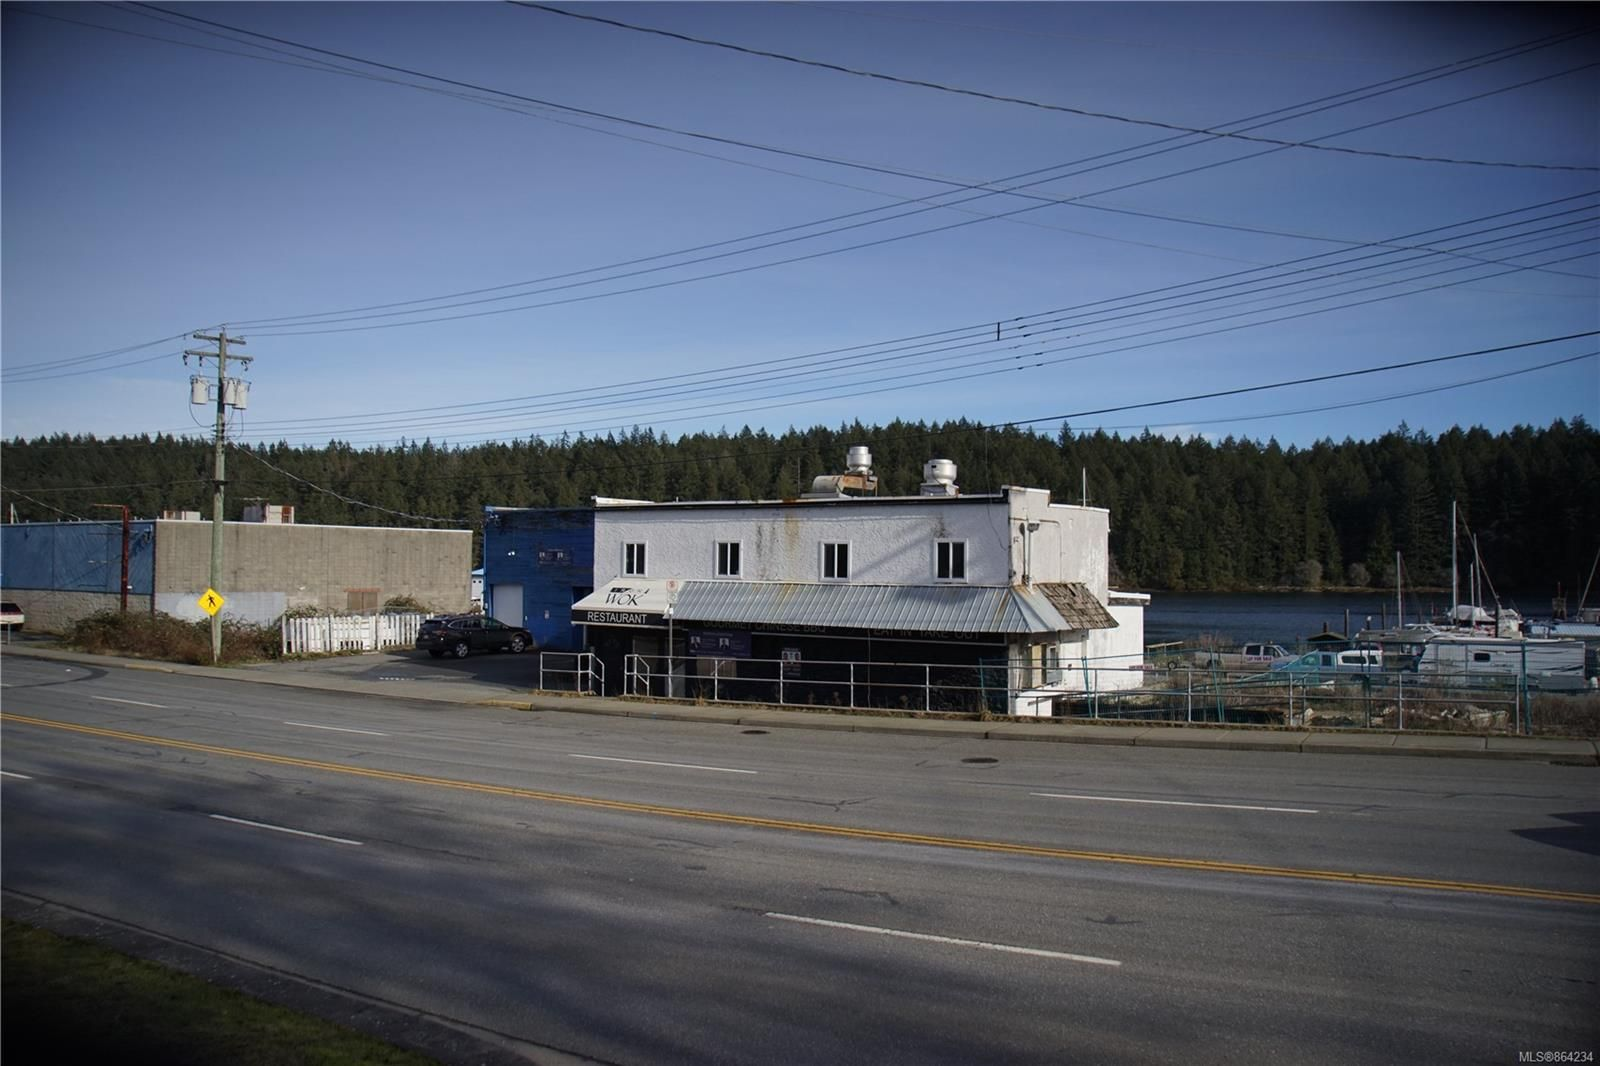 Main Photo: 1340-1350 STEWART Ave in : Na Brechin Hill Mixed Use for sale (Nanaimo)  : MLS®# 864234